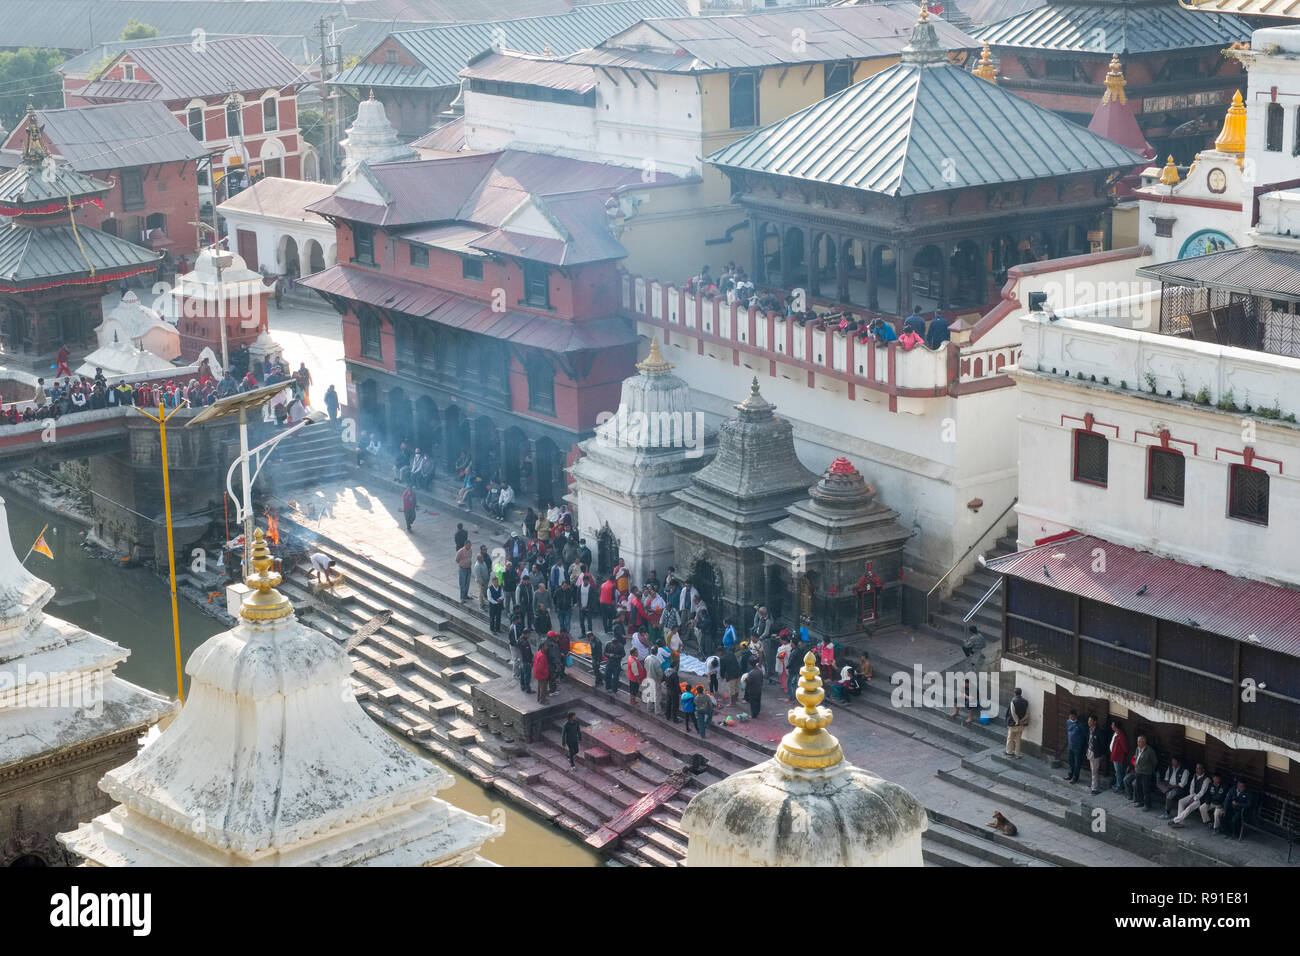 Cremation ghats on the Bagmati river at Pashupatinath, Nepal's most important Hindu temple, Kathmandu. - Stock Image